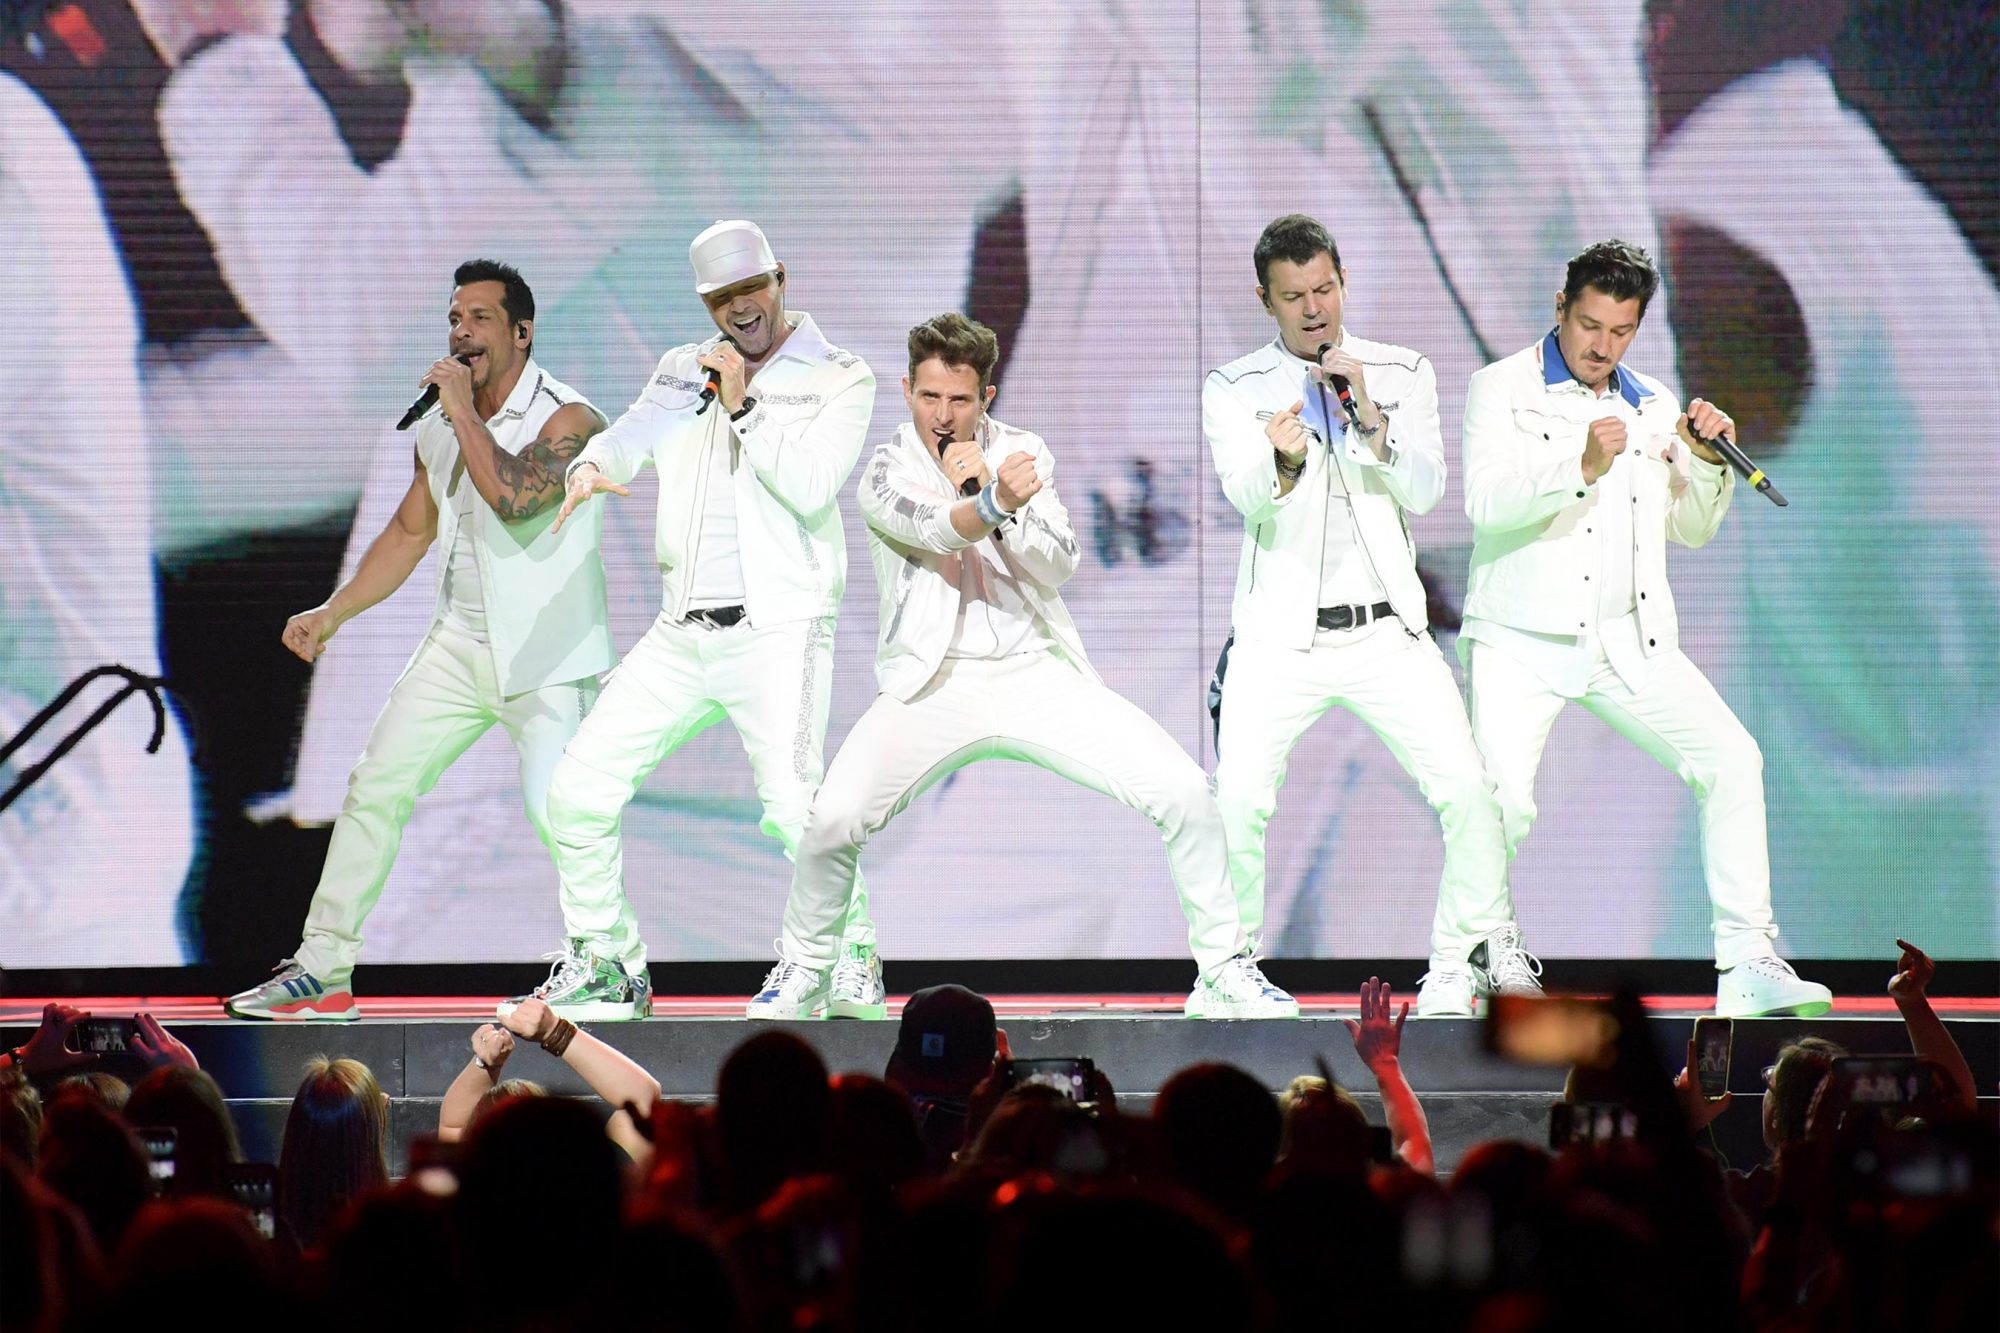 NASHVILLE, TENNESSEE - MAY 09: Danny Wood, Donnie Wahlberg, Joey McIntyre, Jordan Knight and Jonathan Knight of the musical group New Kids On The Block perform at Bridgestone Arena on May 09, 2019 in Nashville, Tennessee. (Photo by Jason Kempin/Getty Images)